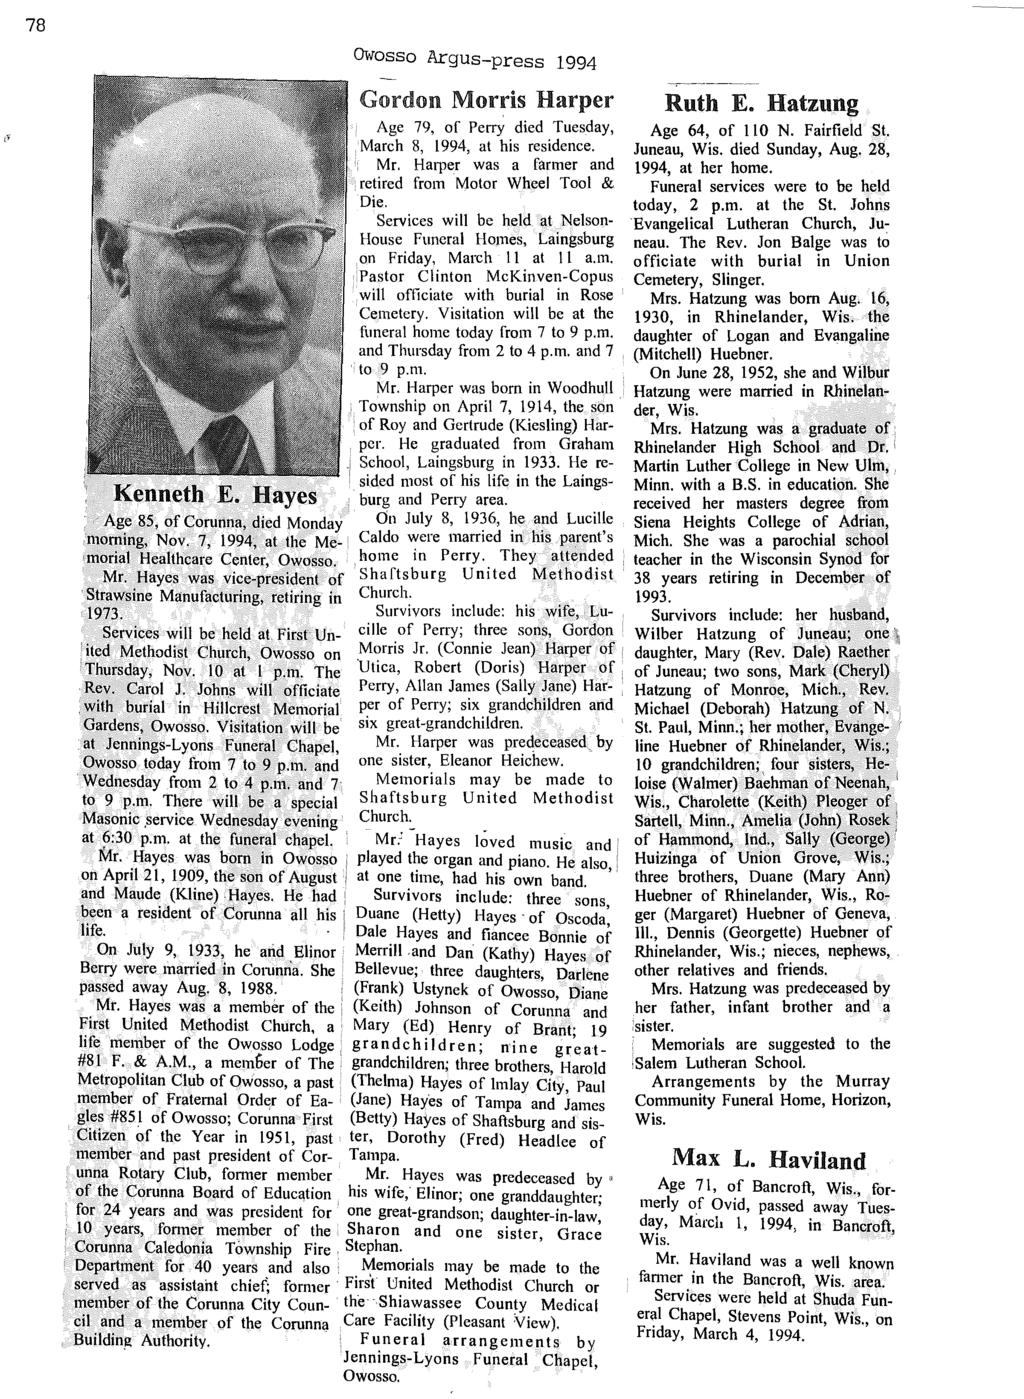 78 Age 85, of Corunna, died Monday morning, Nov. 7, 1994; at the Me 'morial Healthcare Center, Owosso. Mr. Hayes was vice-president of 'Strawsine ManUfacturing, retiring in 1973.